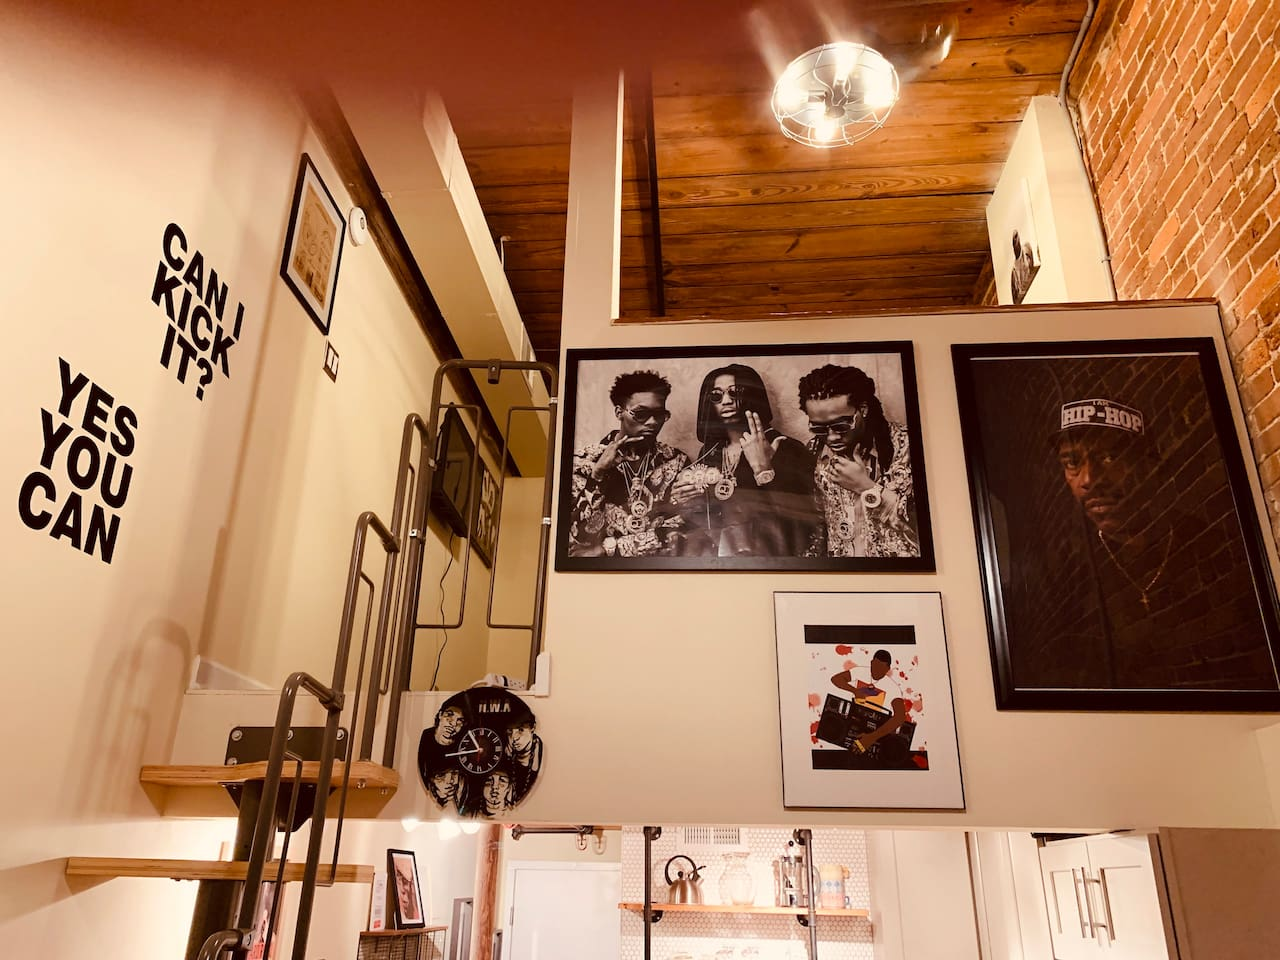 This unit is covered in cool art that makes this a museum to hip-hop culture.